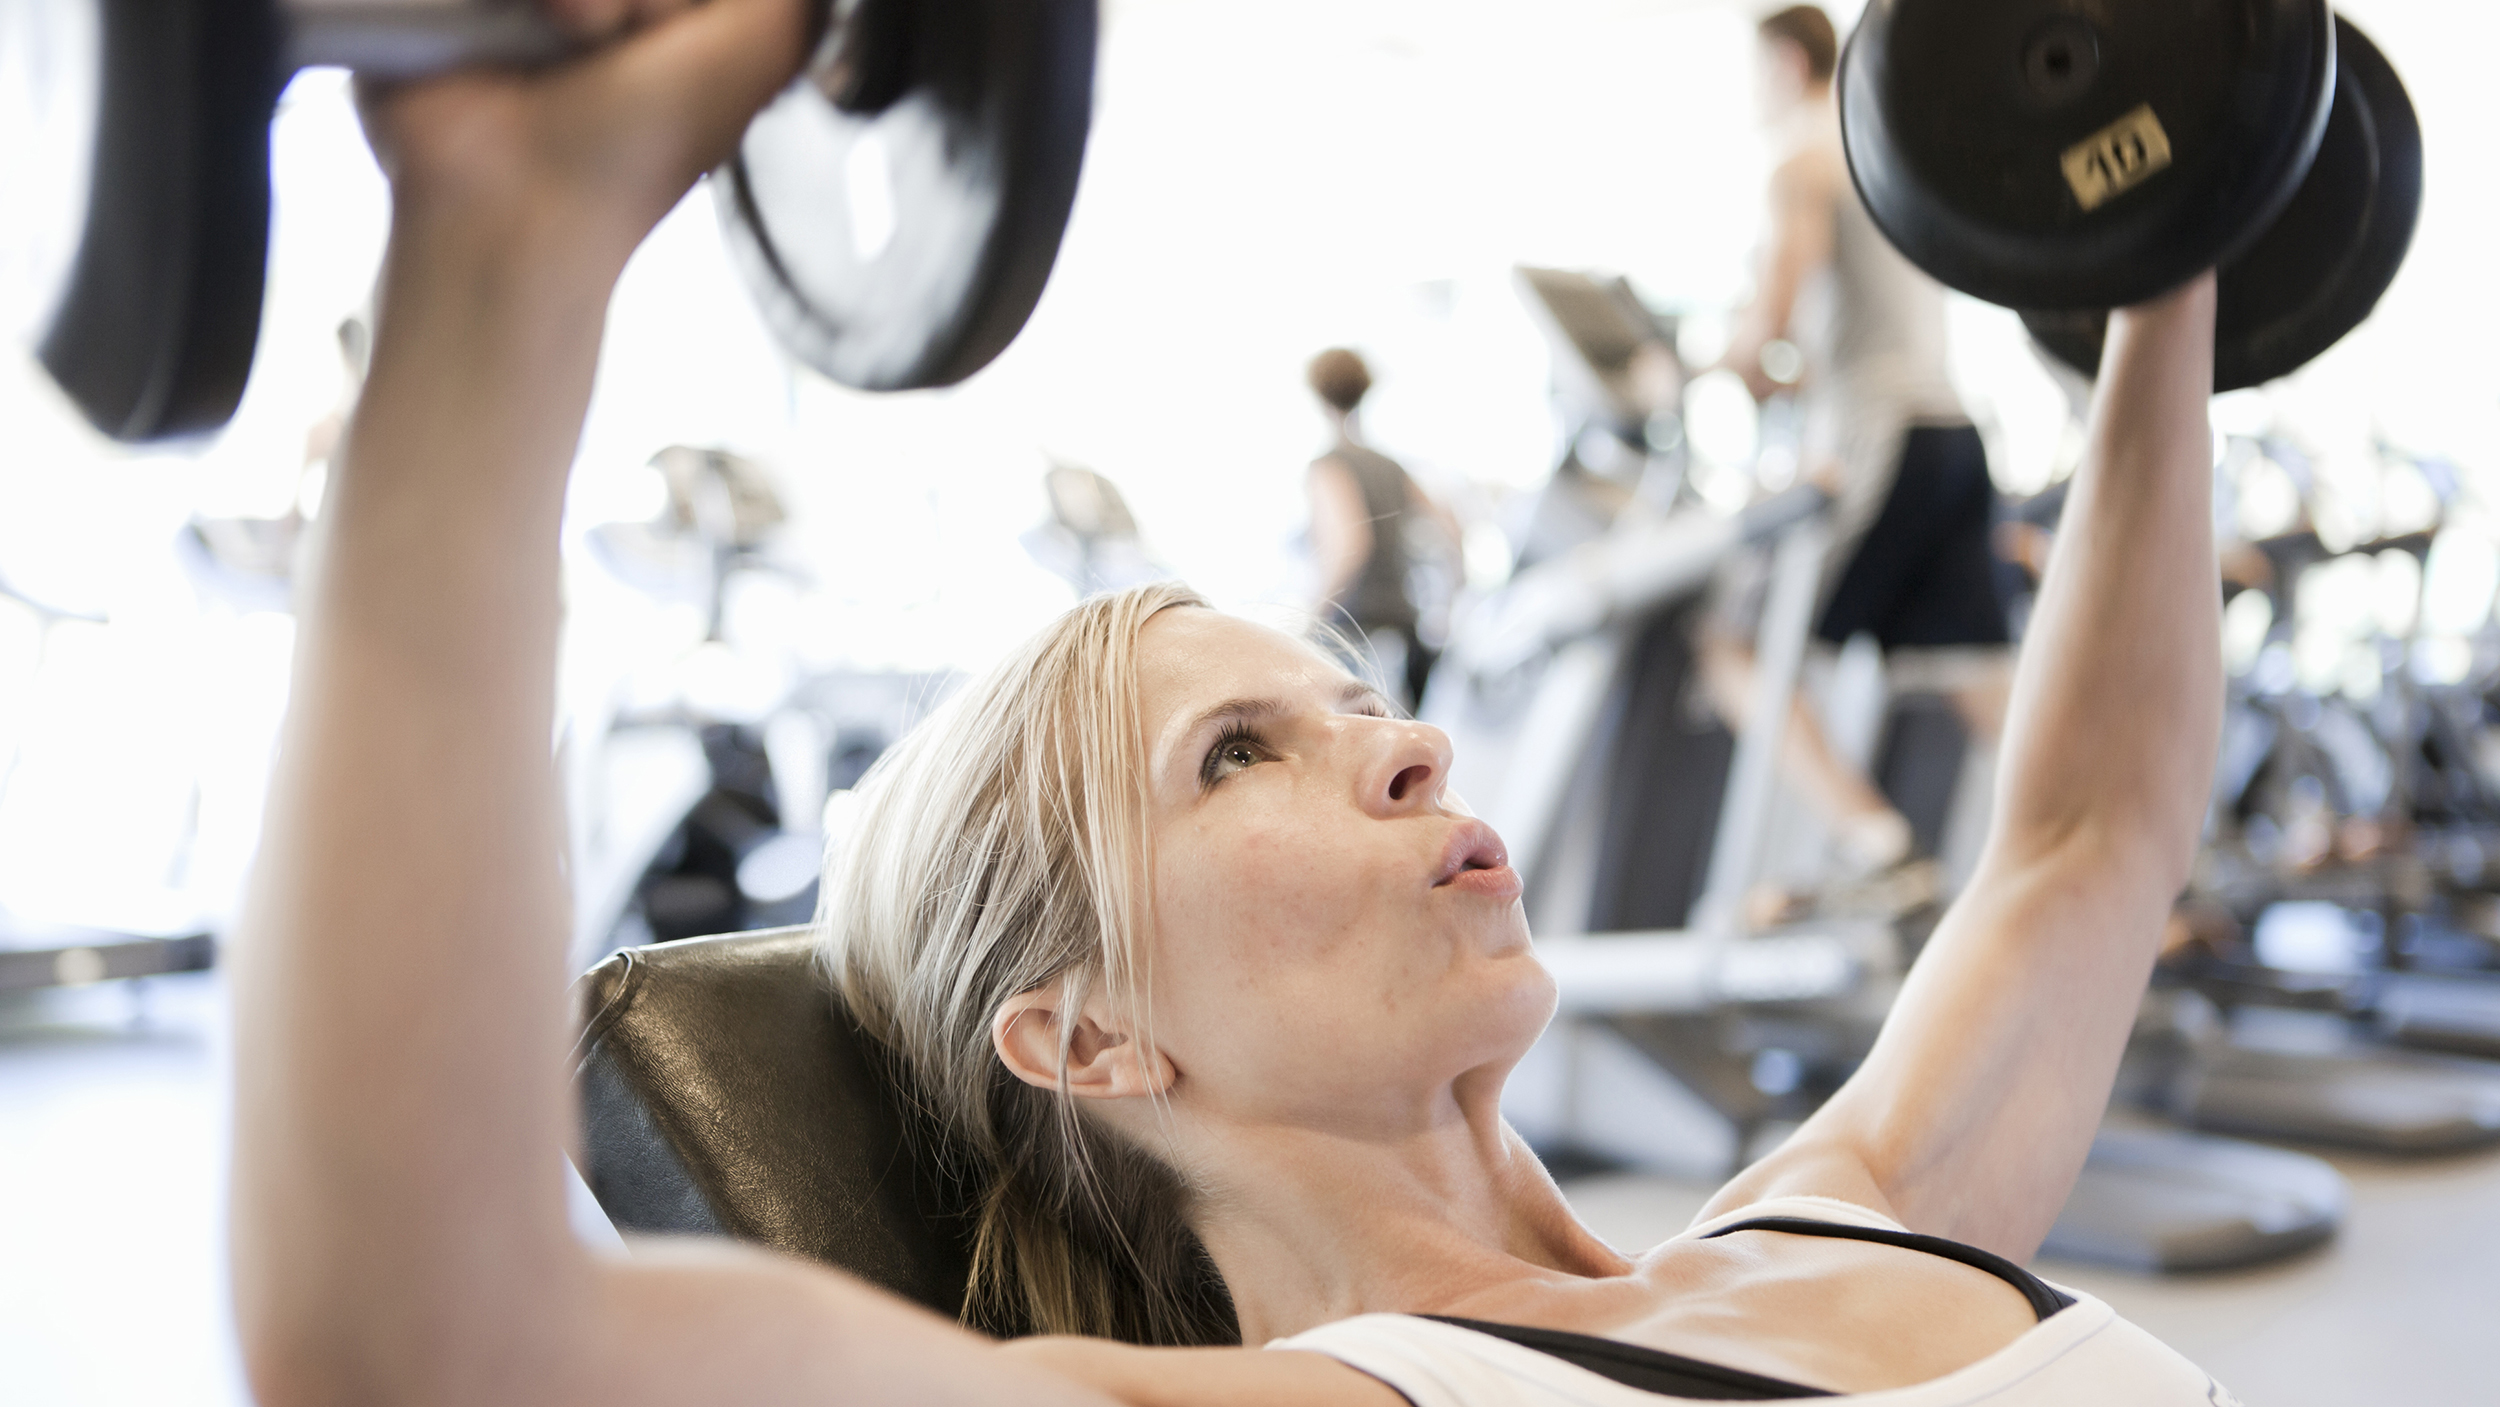 How To Avoid The Gym Initiation Fee €� And Other Helpful Tips Today